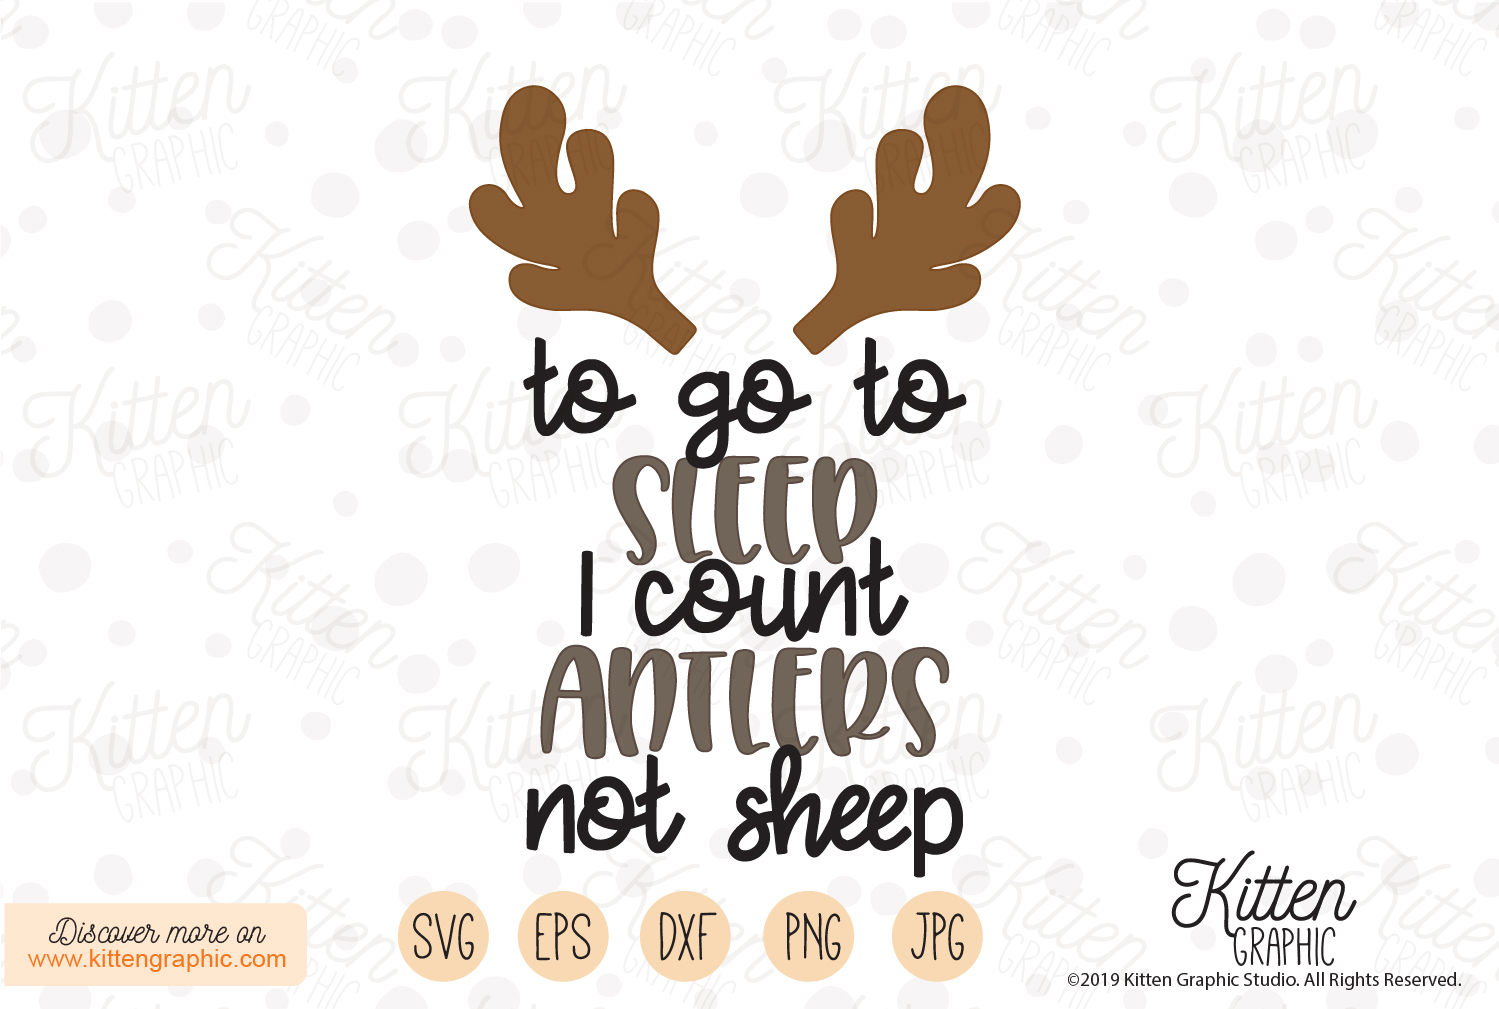 Download Free To Go To Sleep I Count Antlers Not Sheep Graphic By for Cricut Explore, Silhouette and other cutting machines.